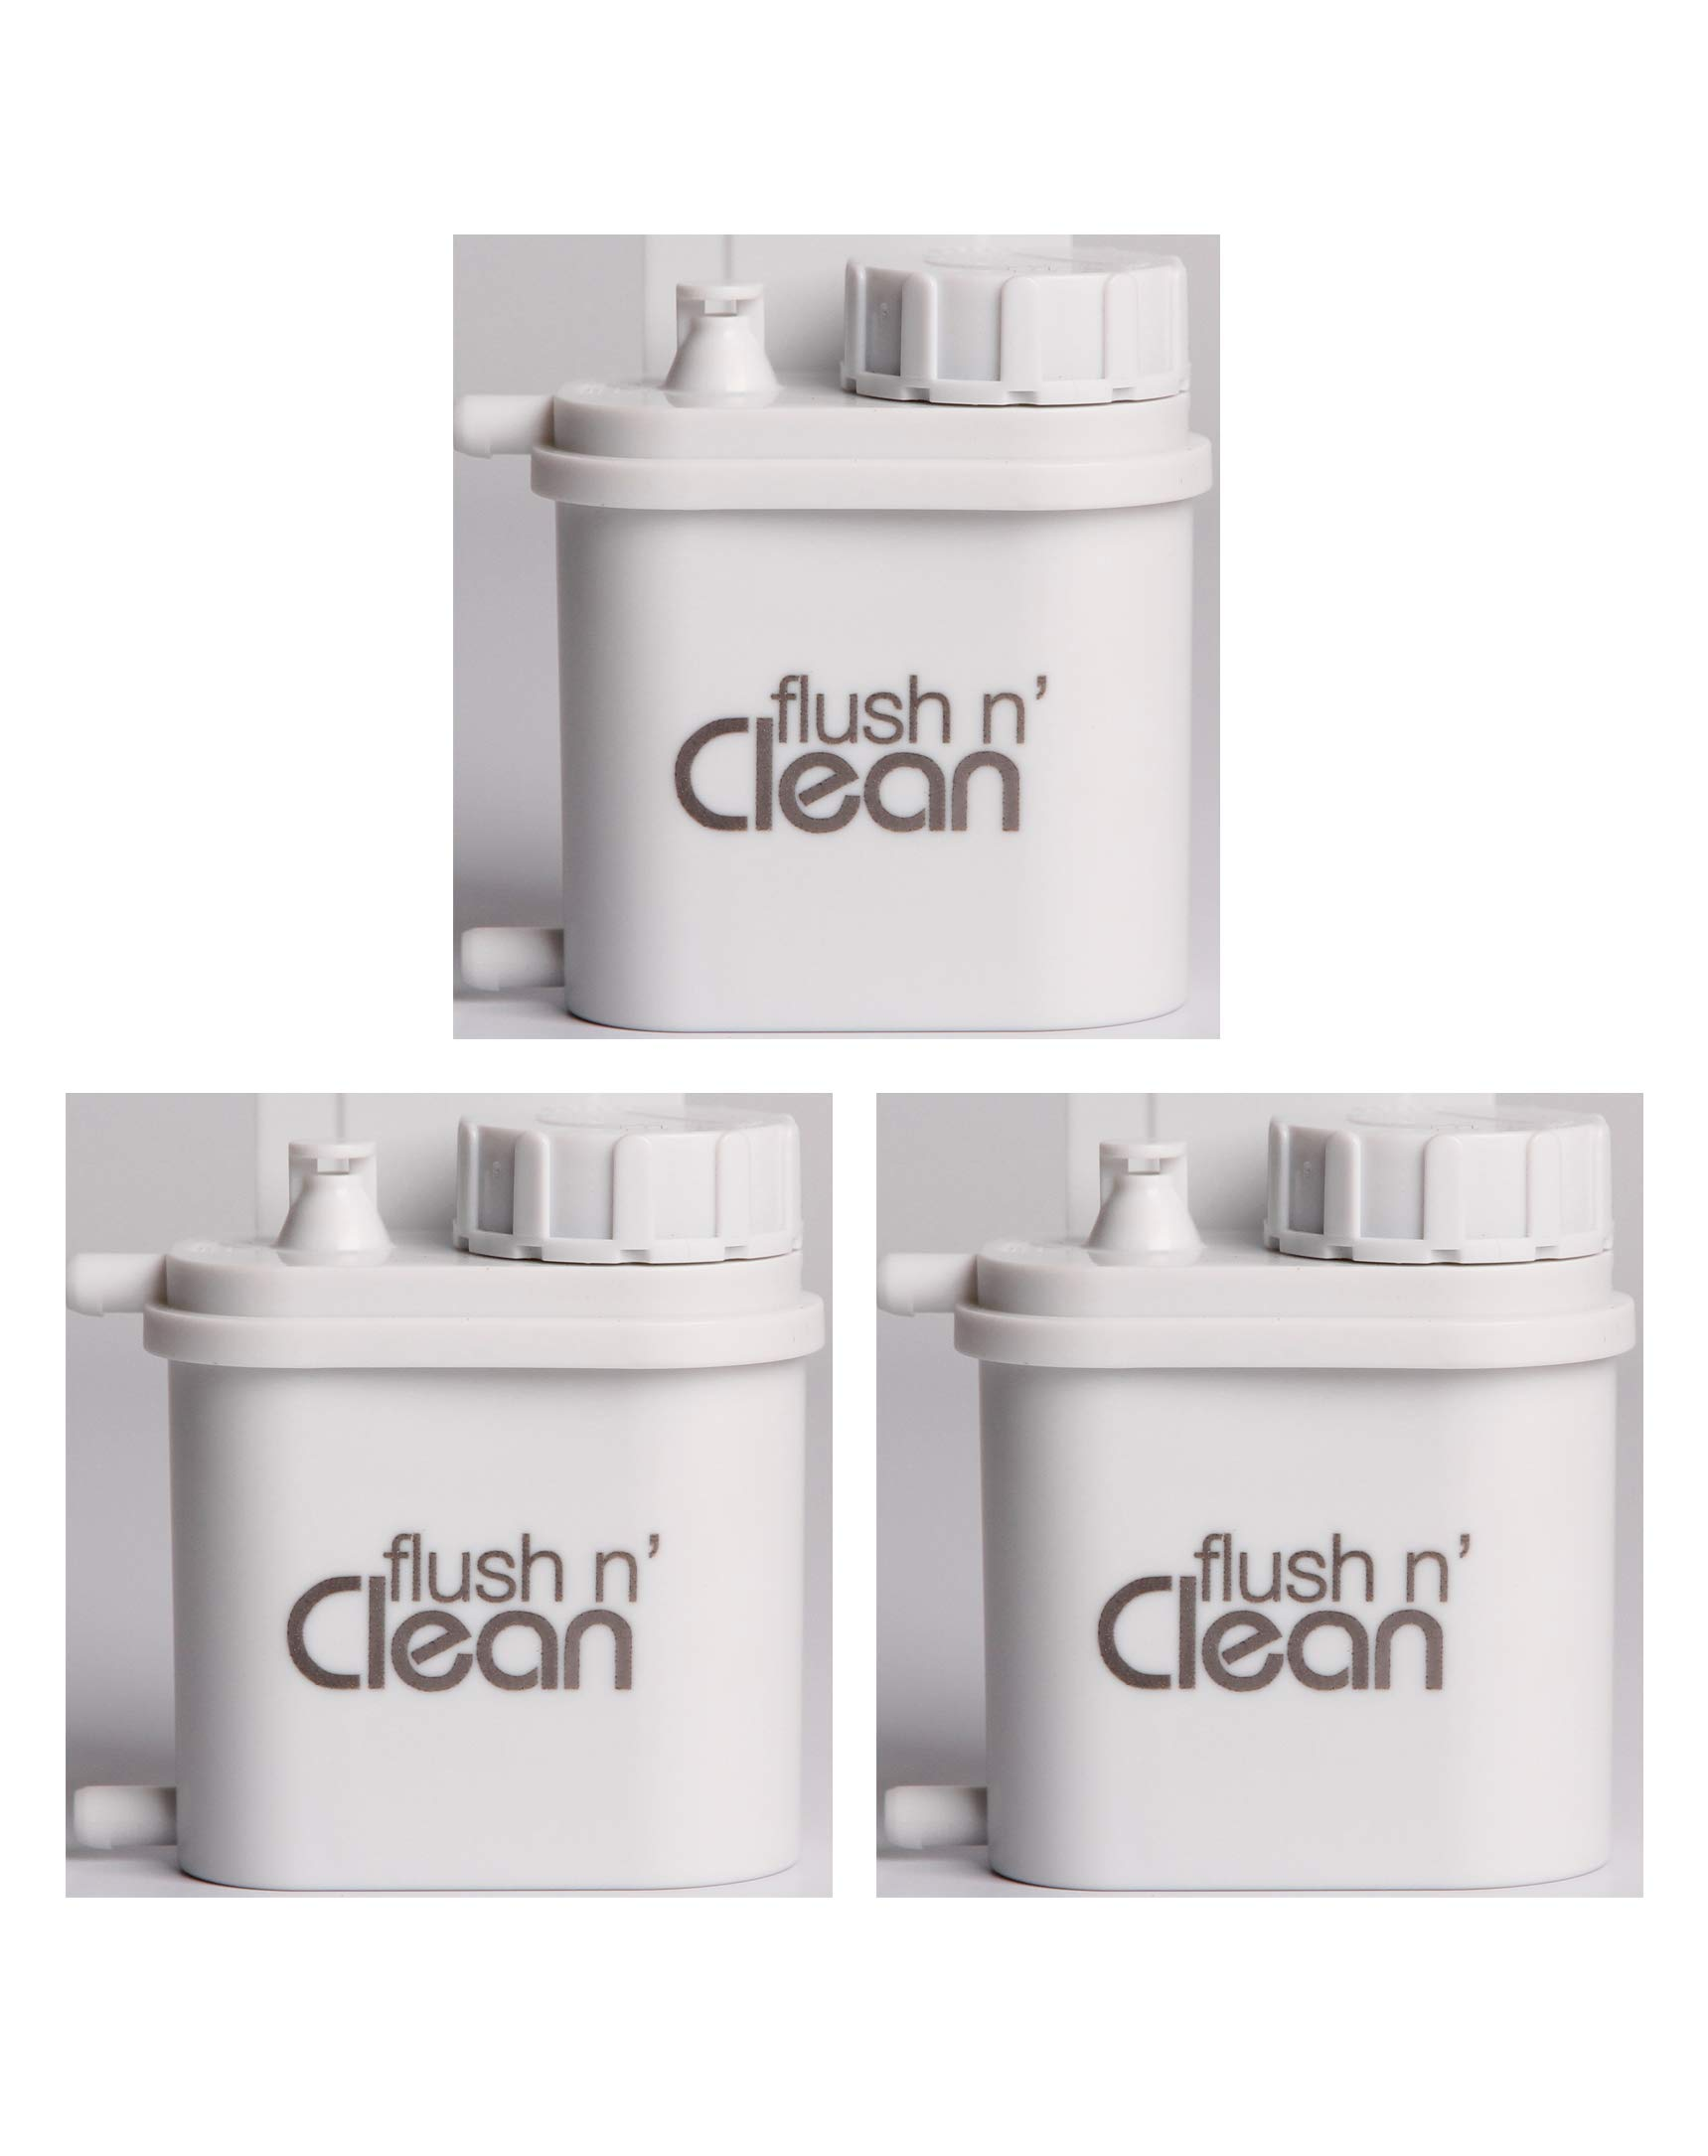 Flush n' Clean Toilet Bowl Cleaner Uses Standard Bromine Tablets - No Special Cartridges - Tablets Included - Fast Easy Installation